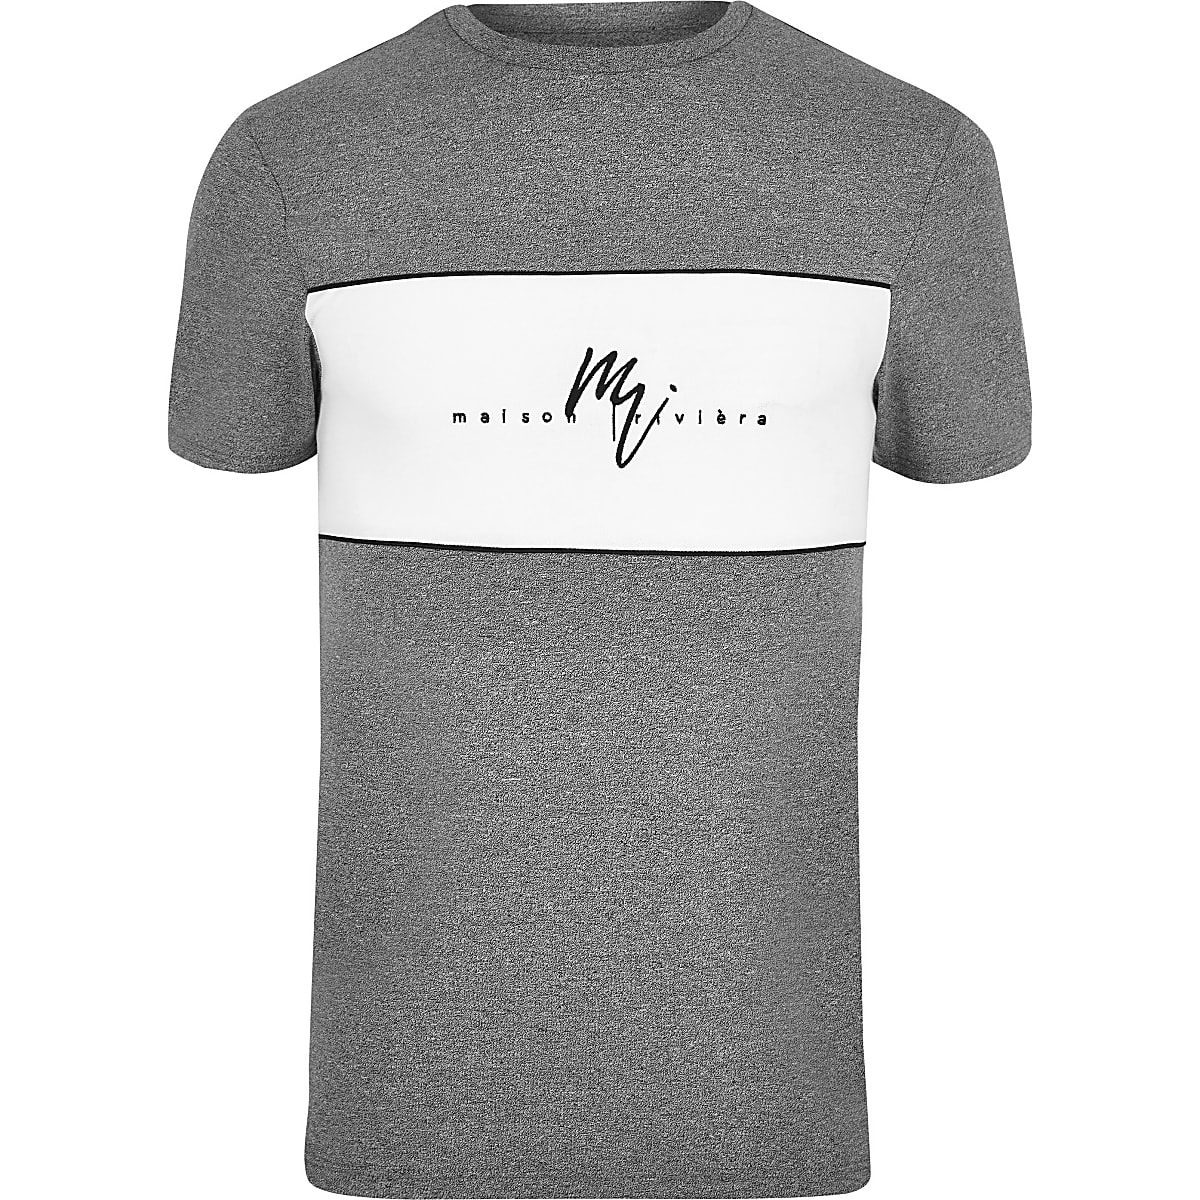 Big and Tall grey Maison Riviera T-shirt